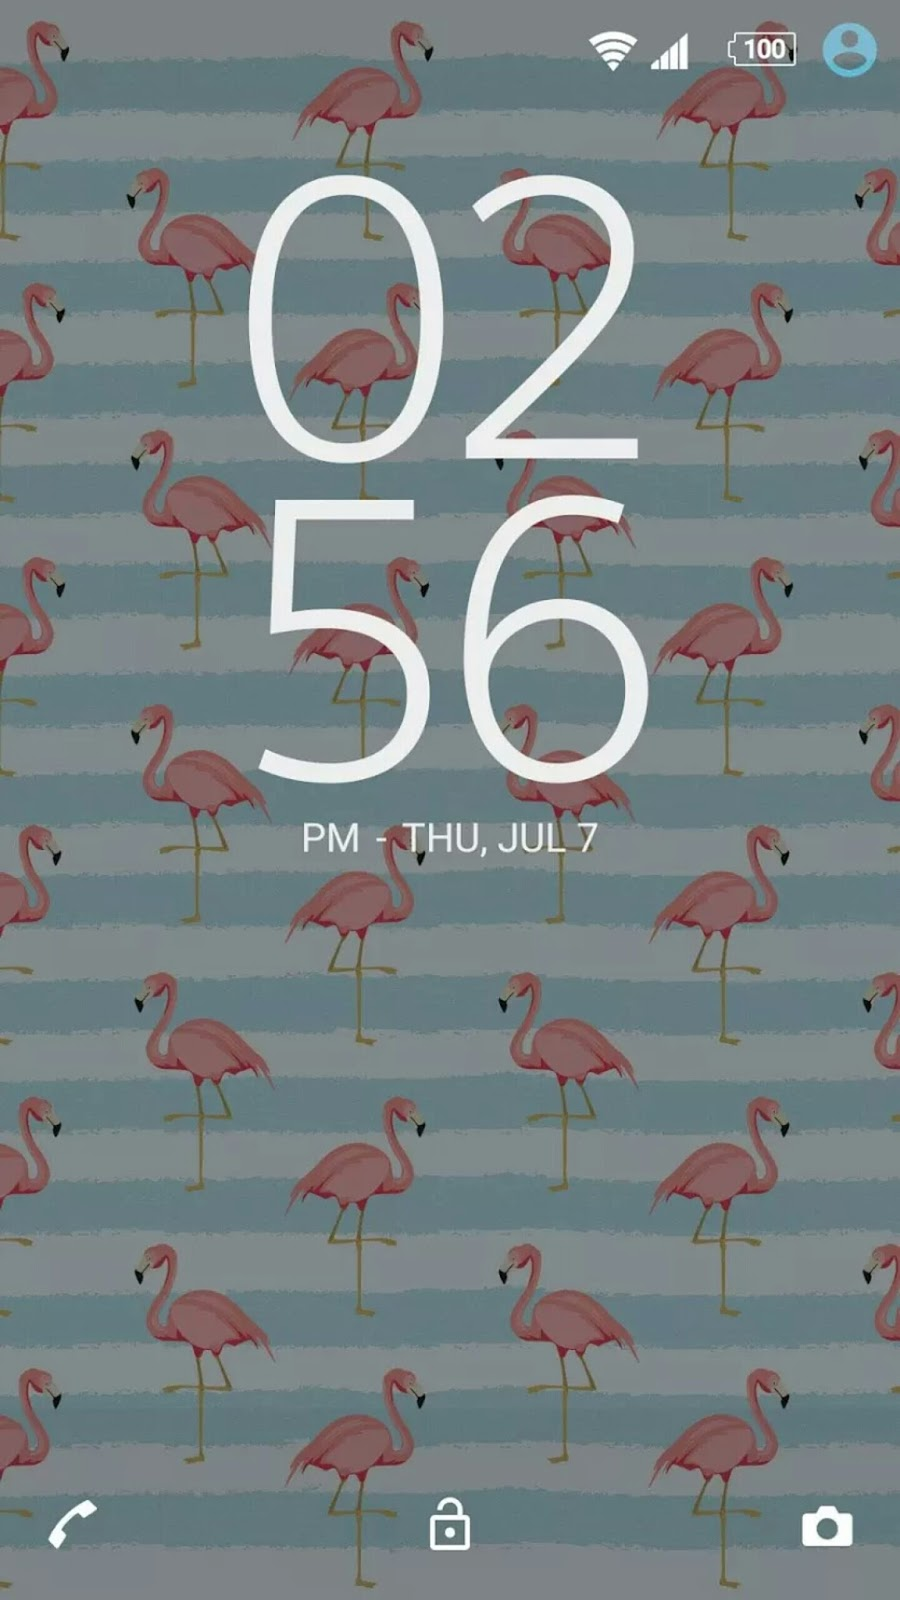 Google play xperia themes - Sony Mobile Has Released A New Premium Xperia Theme Called Florida The Theme Is Adorned With Flamingos Swimming Pools And Even A Florida Orange For Its